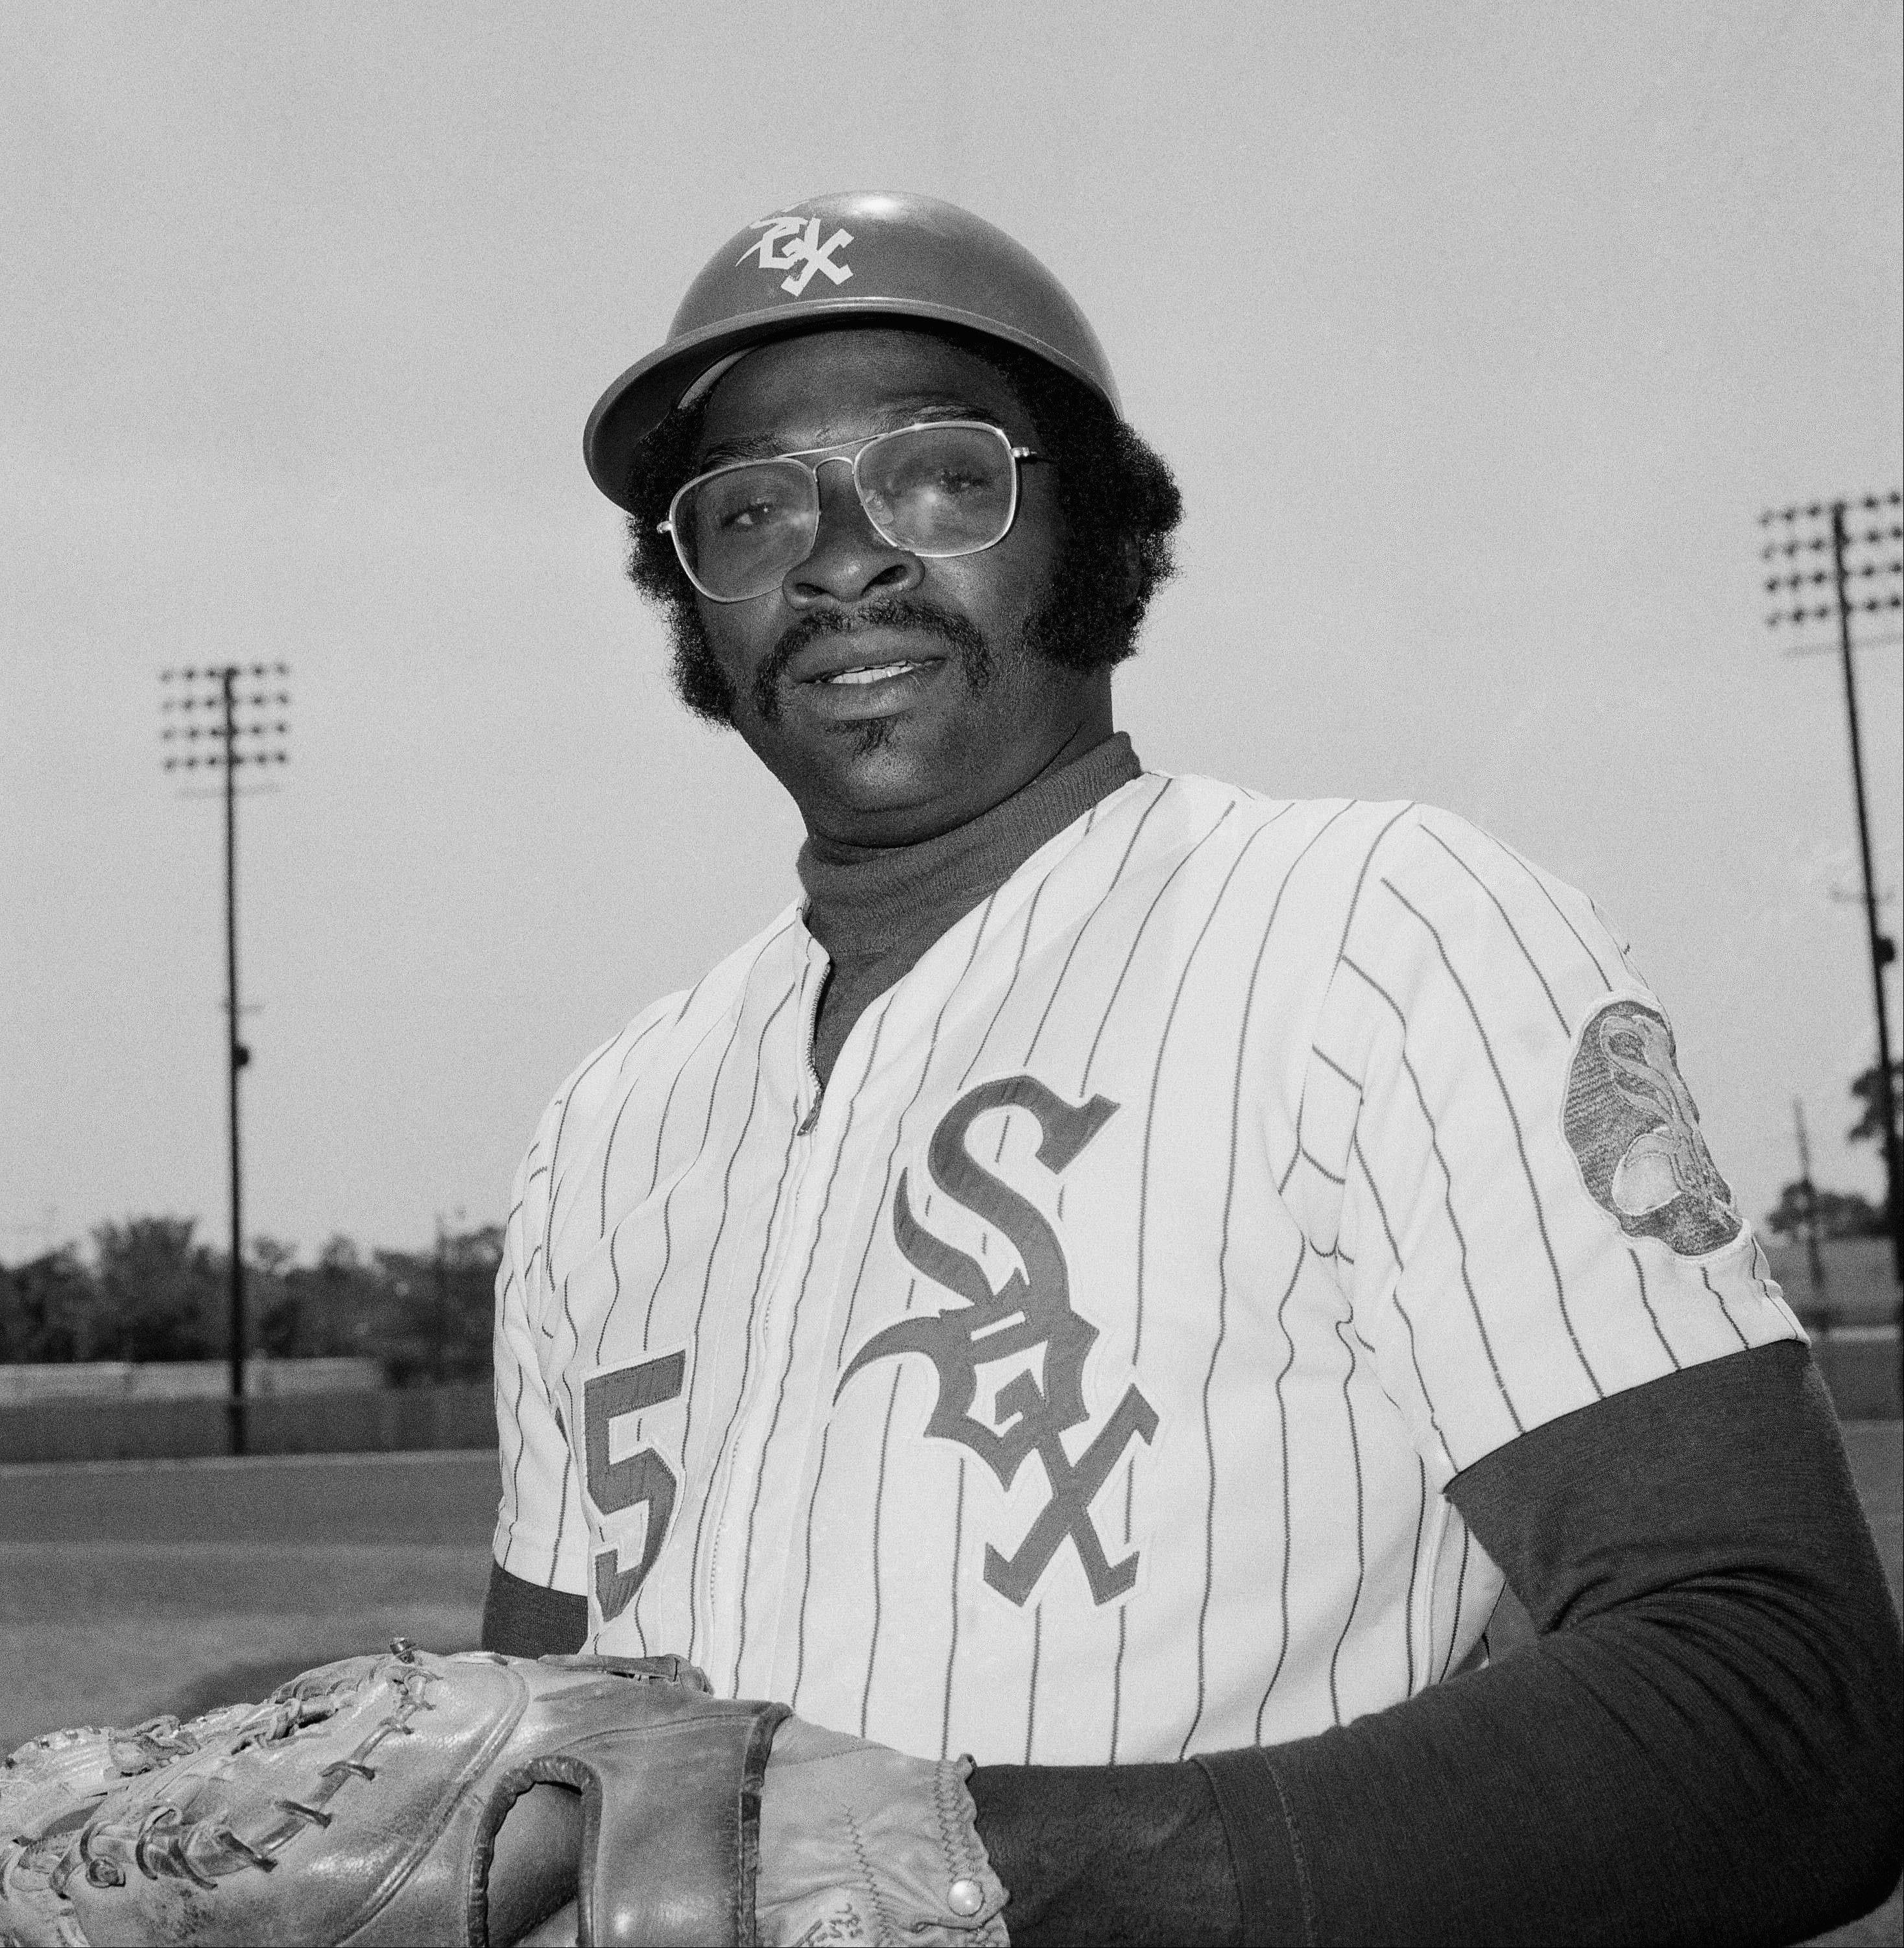 Dick Allen, first baseman, Chicago White Sox, 1973.